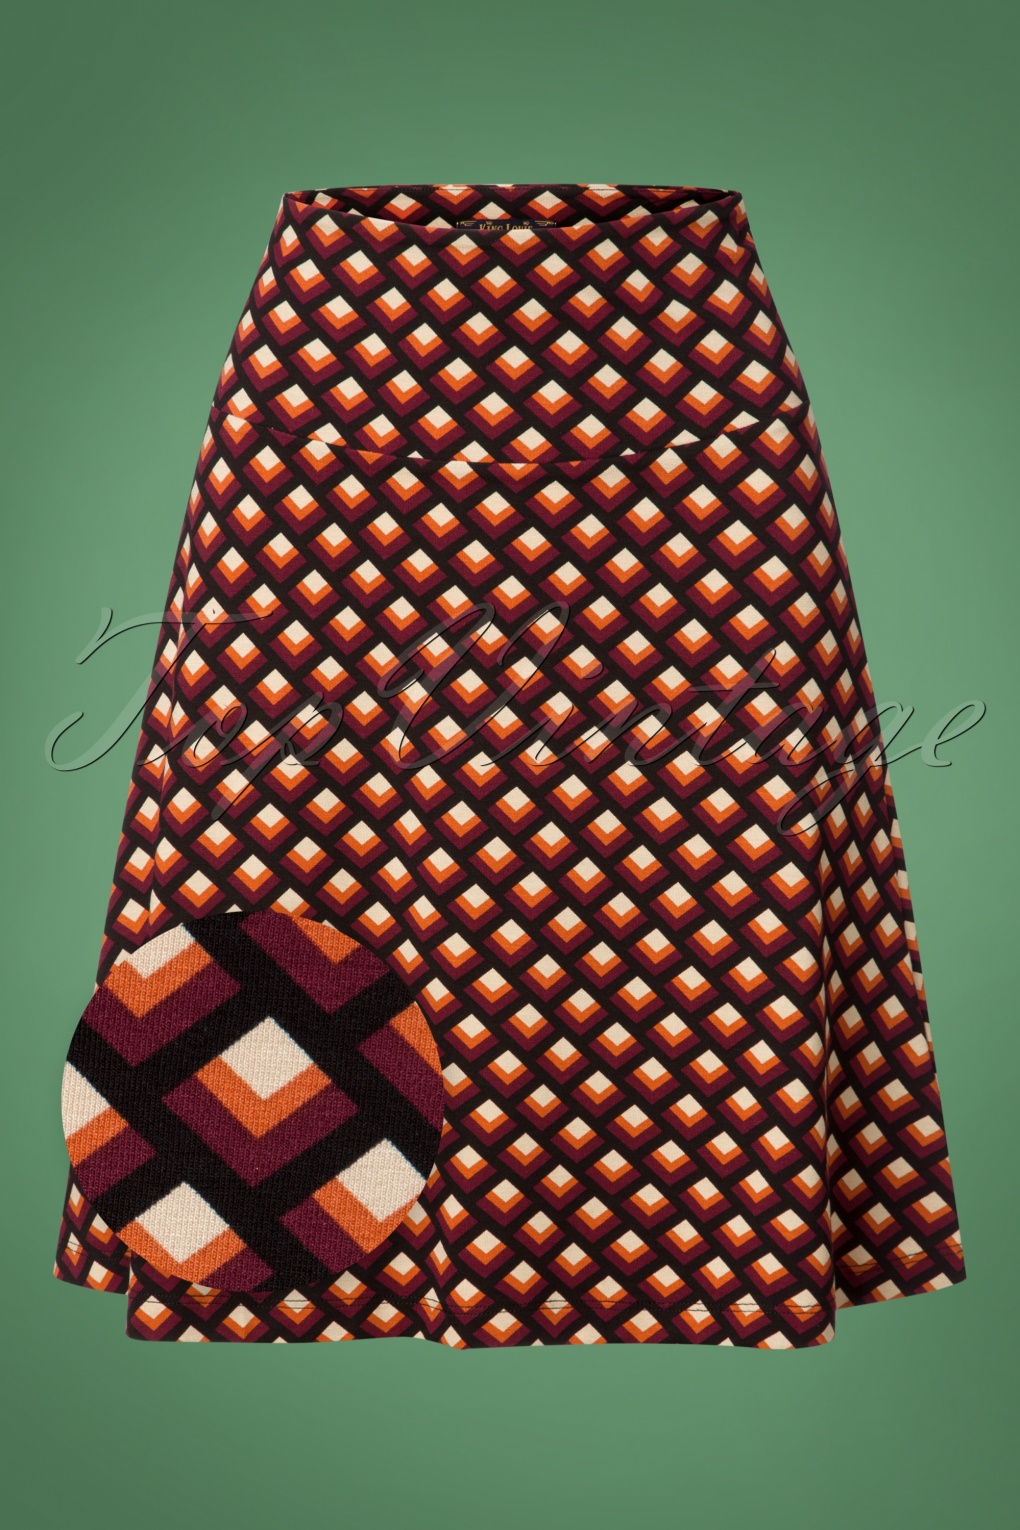 Retro Skirts: Vintage, Pencil, Circle, & Plus Sizes 60s Oddity Borderskirt in True Red £53.05 AT vintagedancer.com